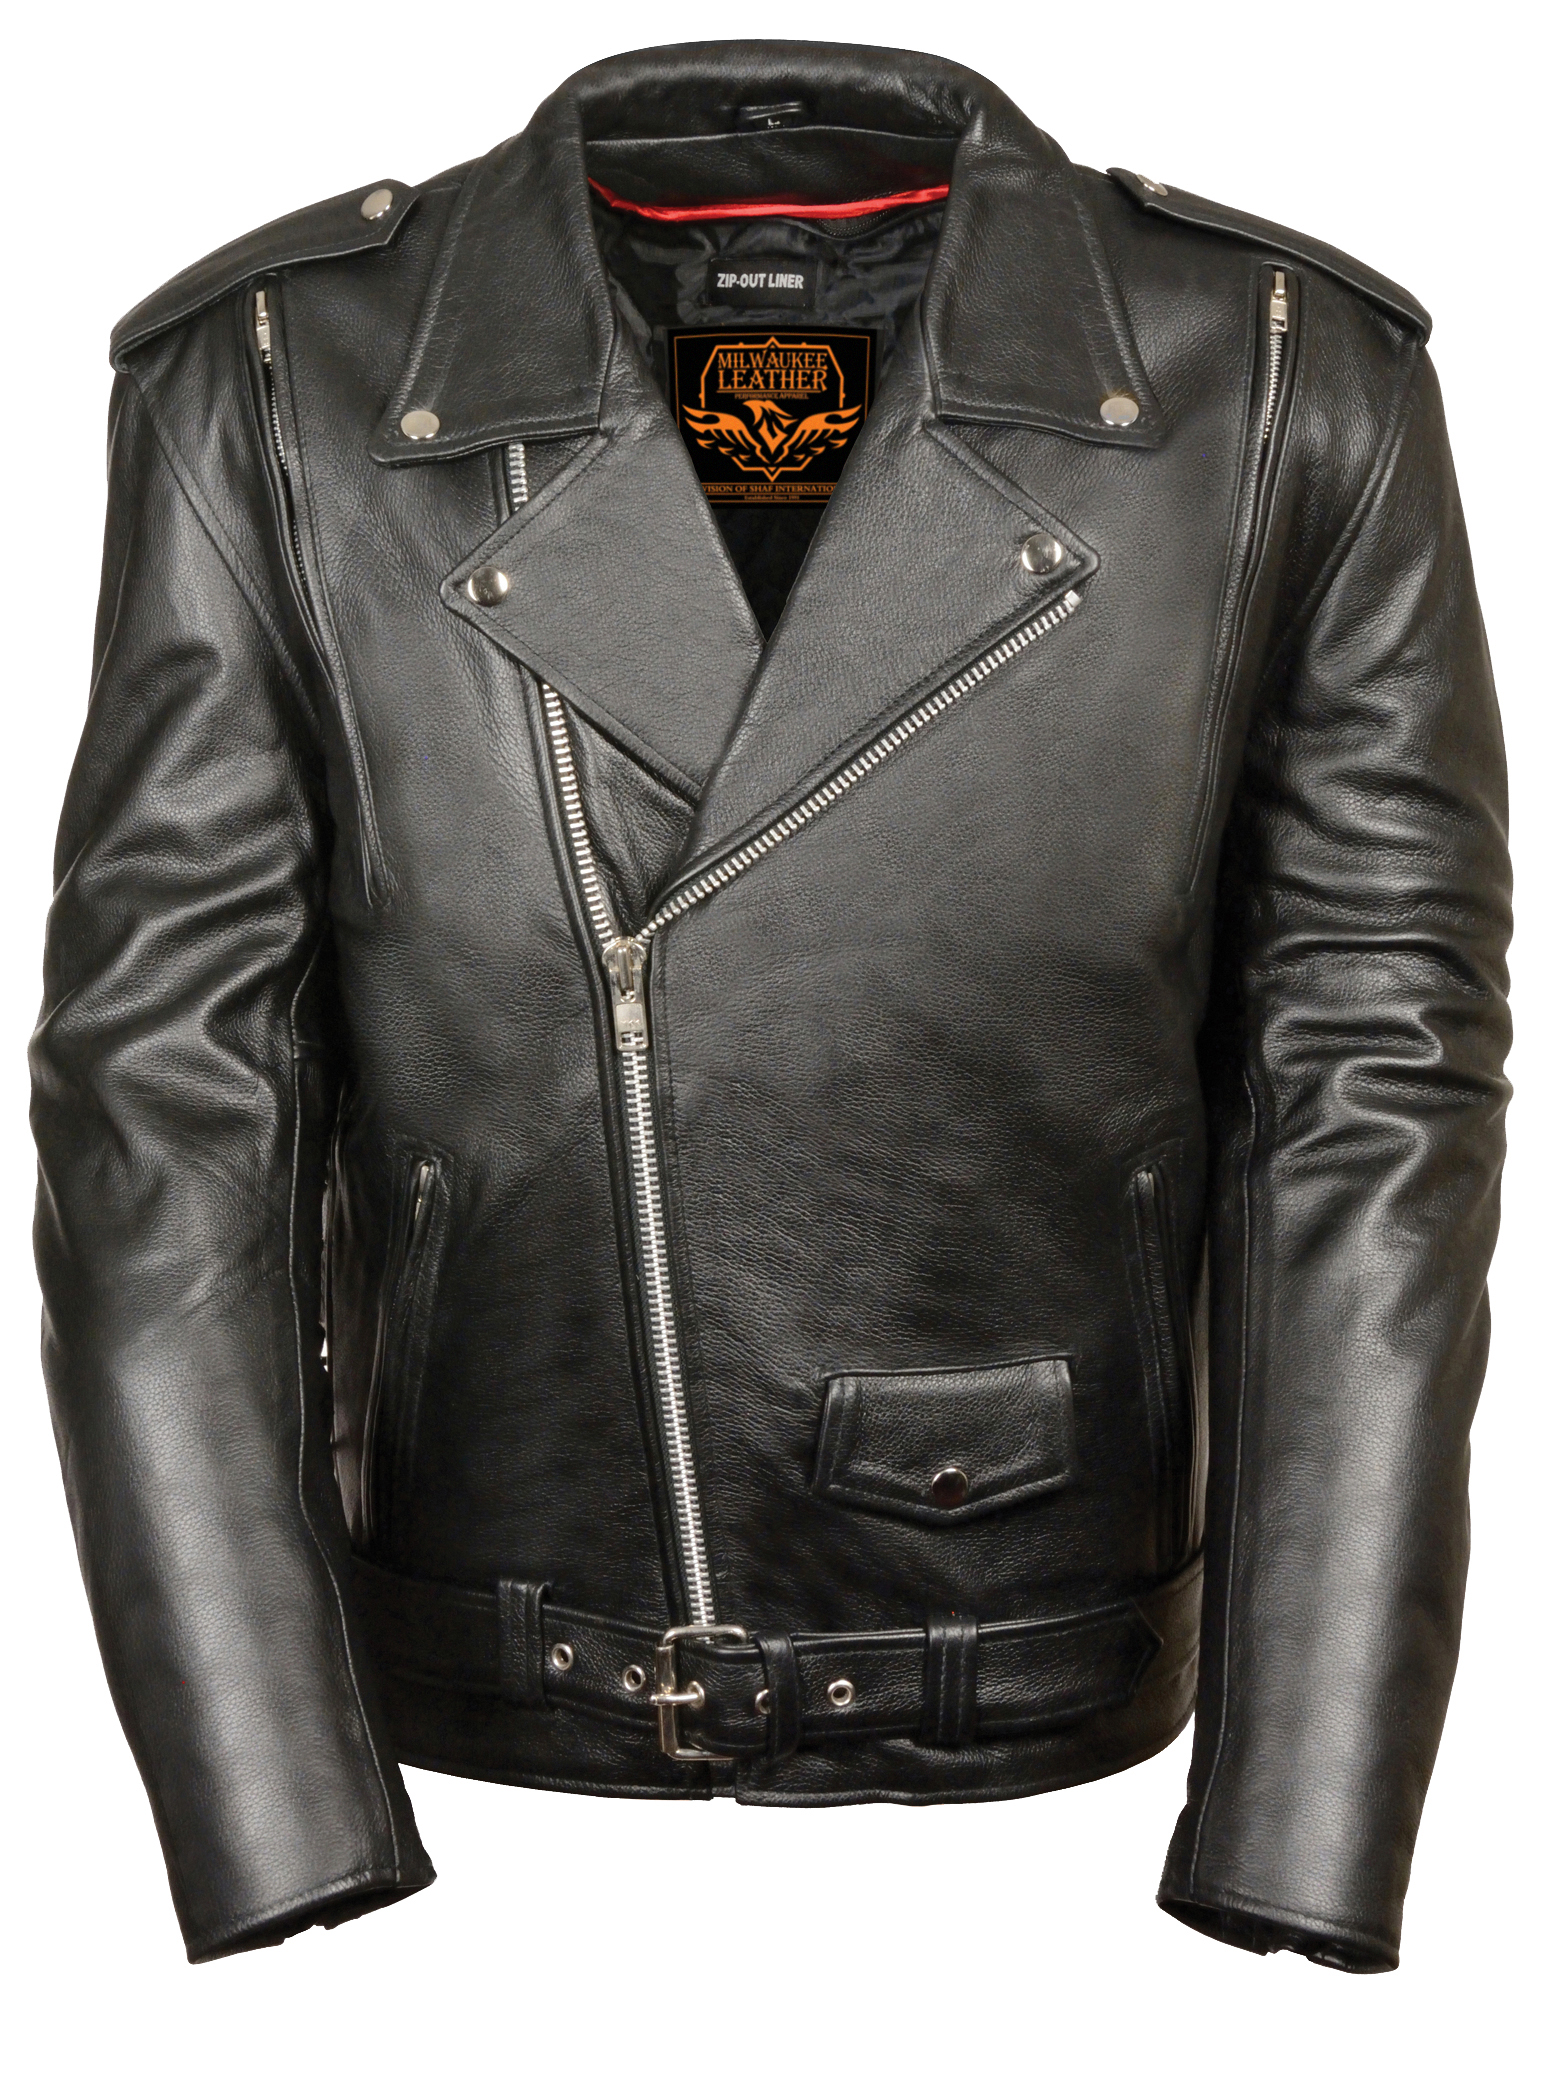 Dynamic Leather - Site - photo #11